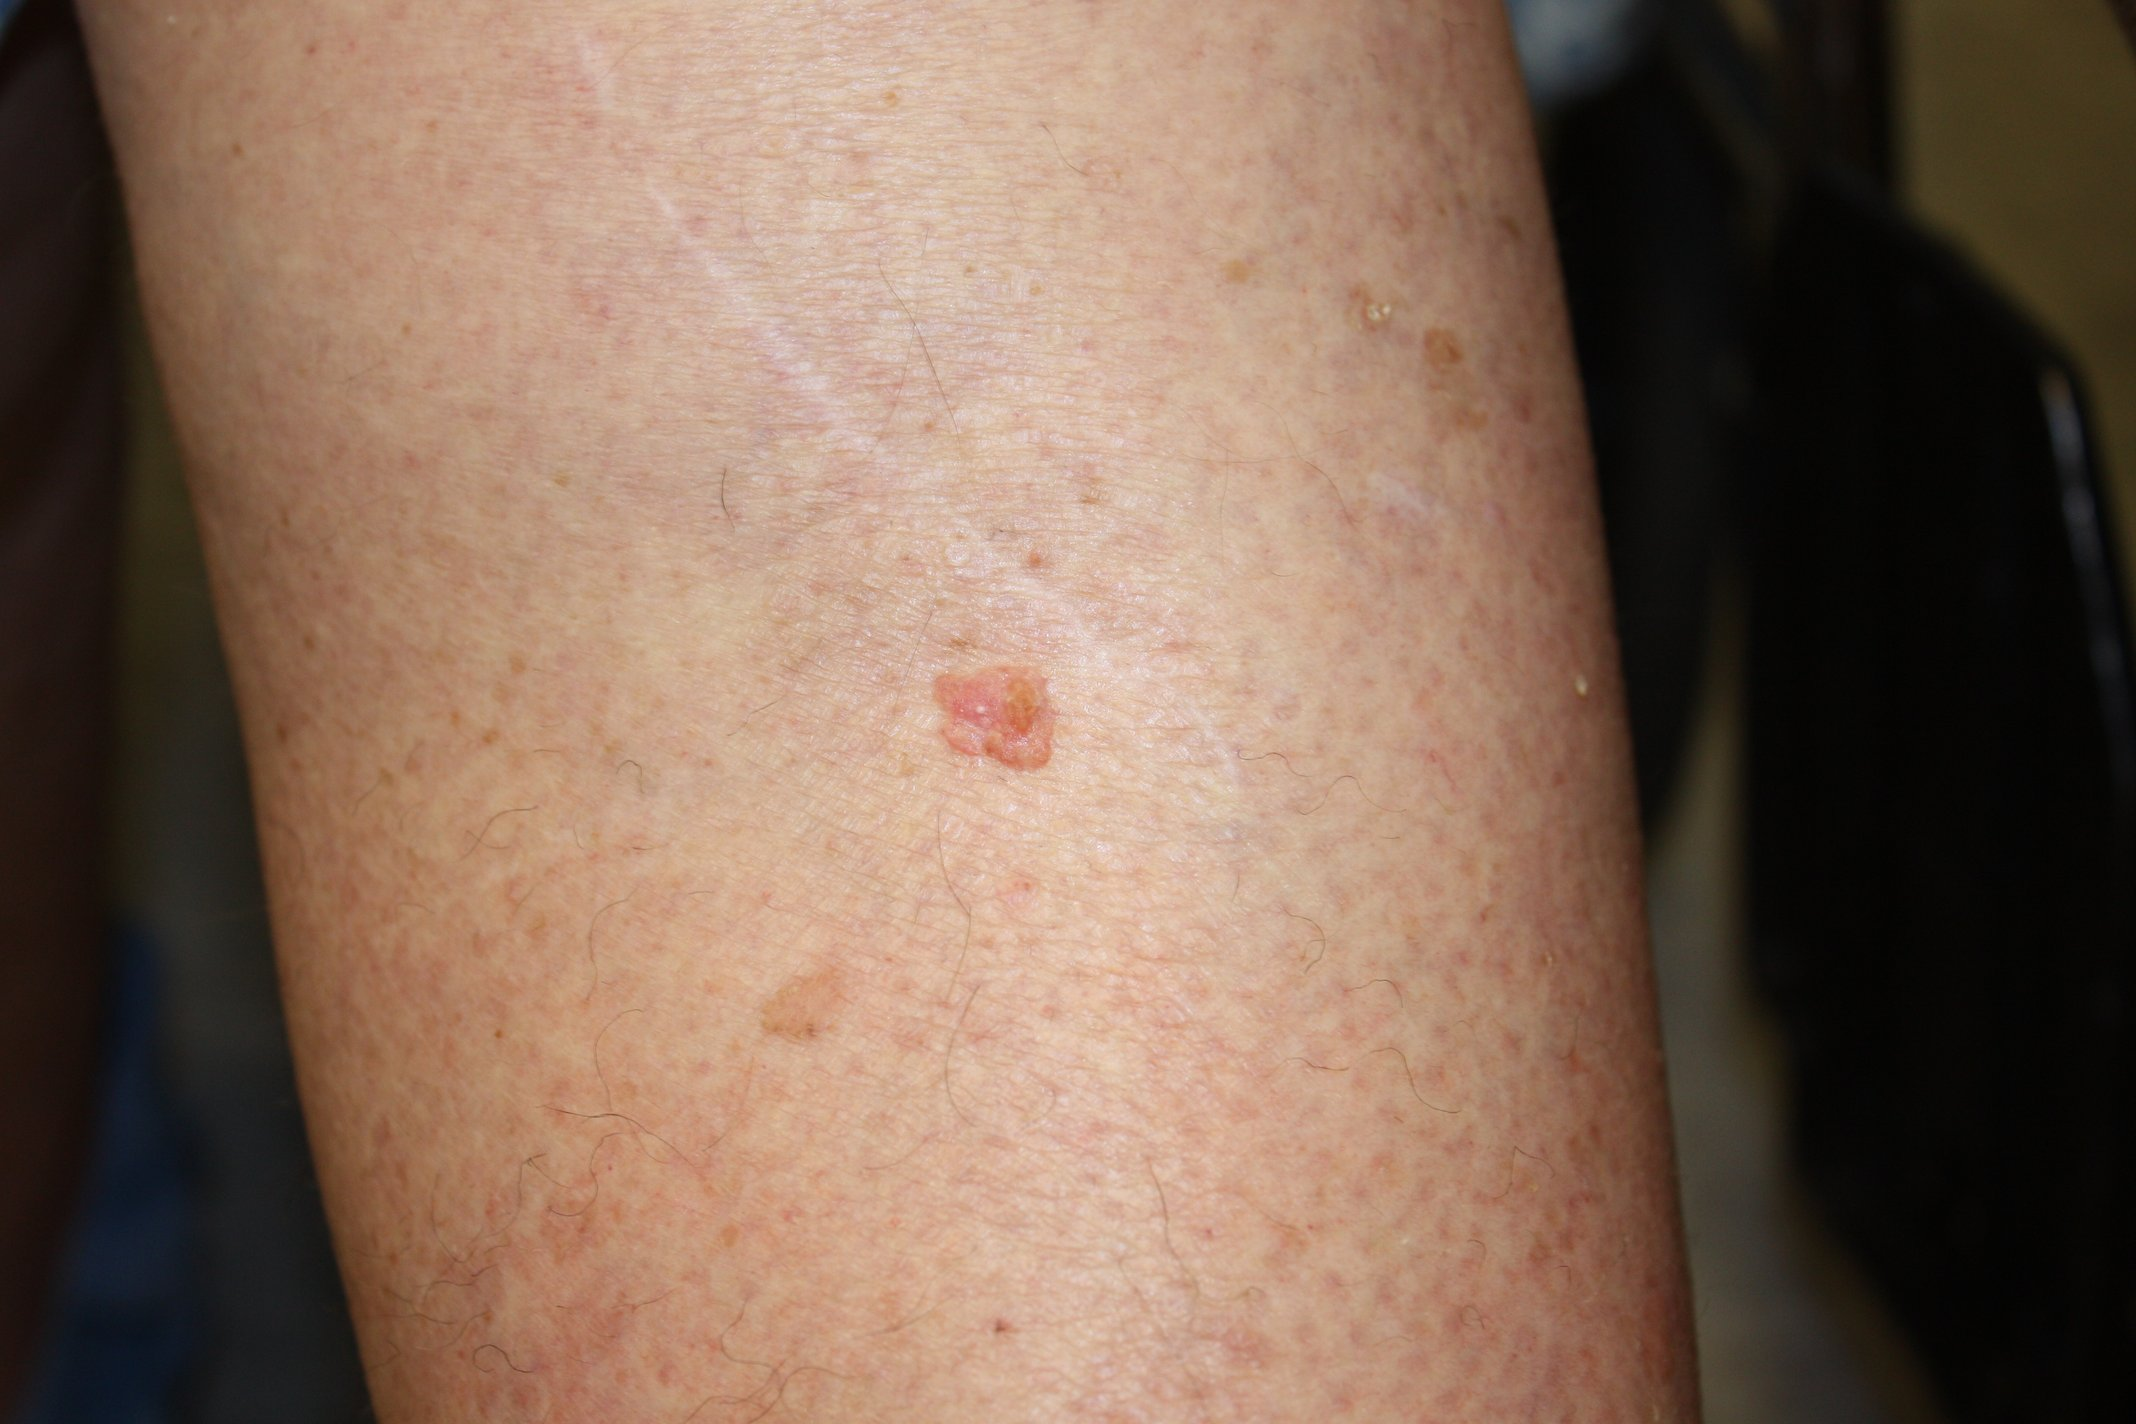 Skin Cancer Squamous Cell Carcinoma Leg Image Details Nci Visuals Online